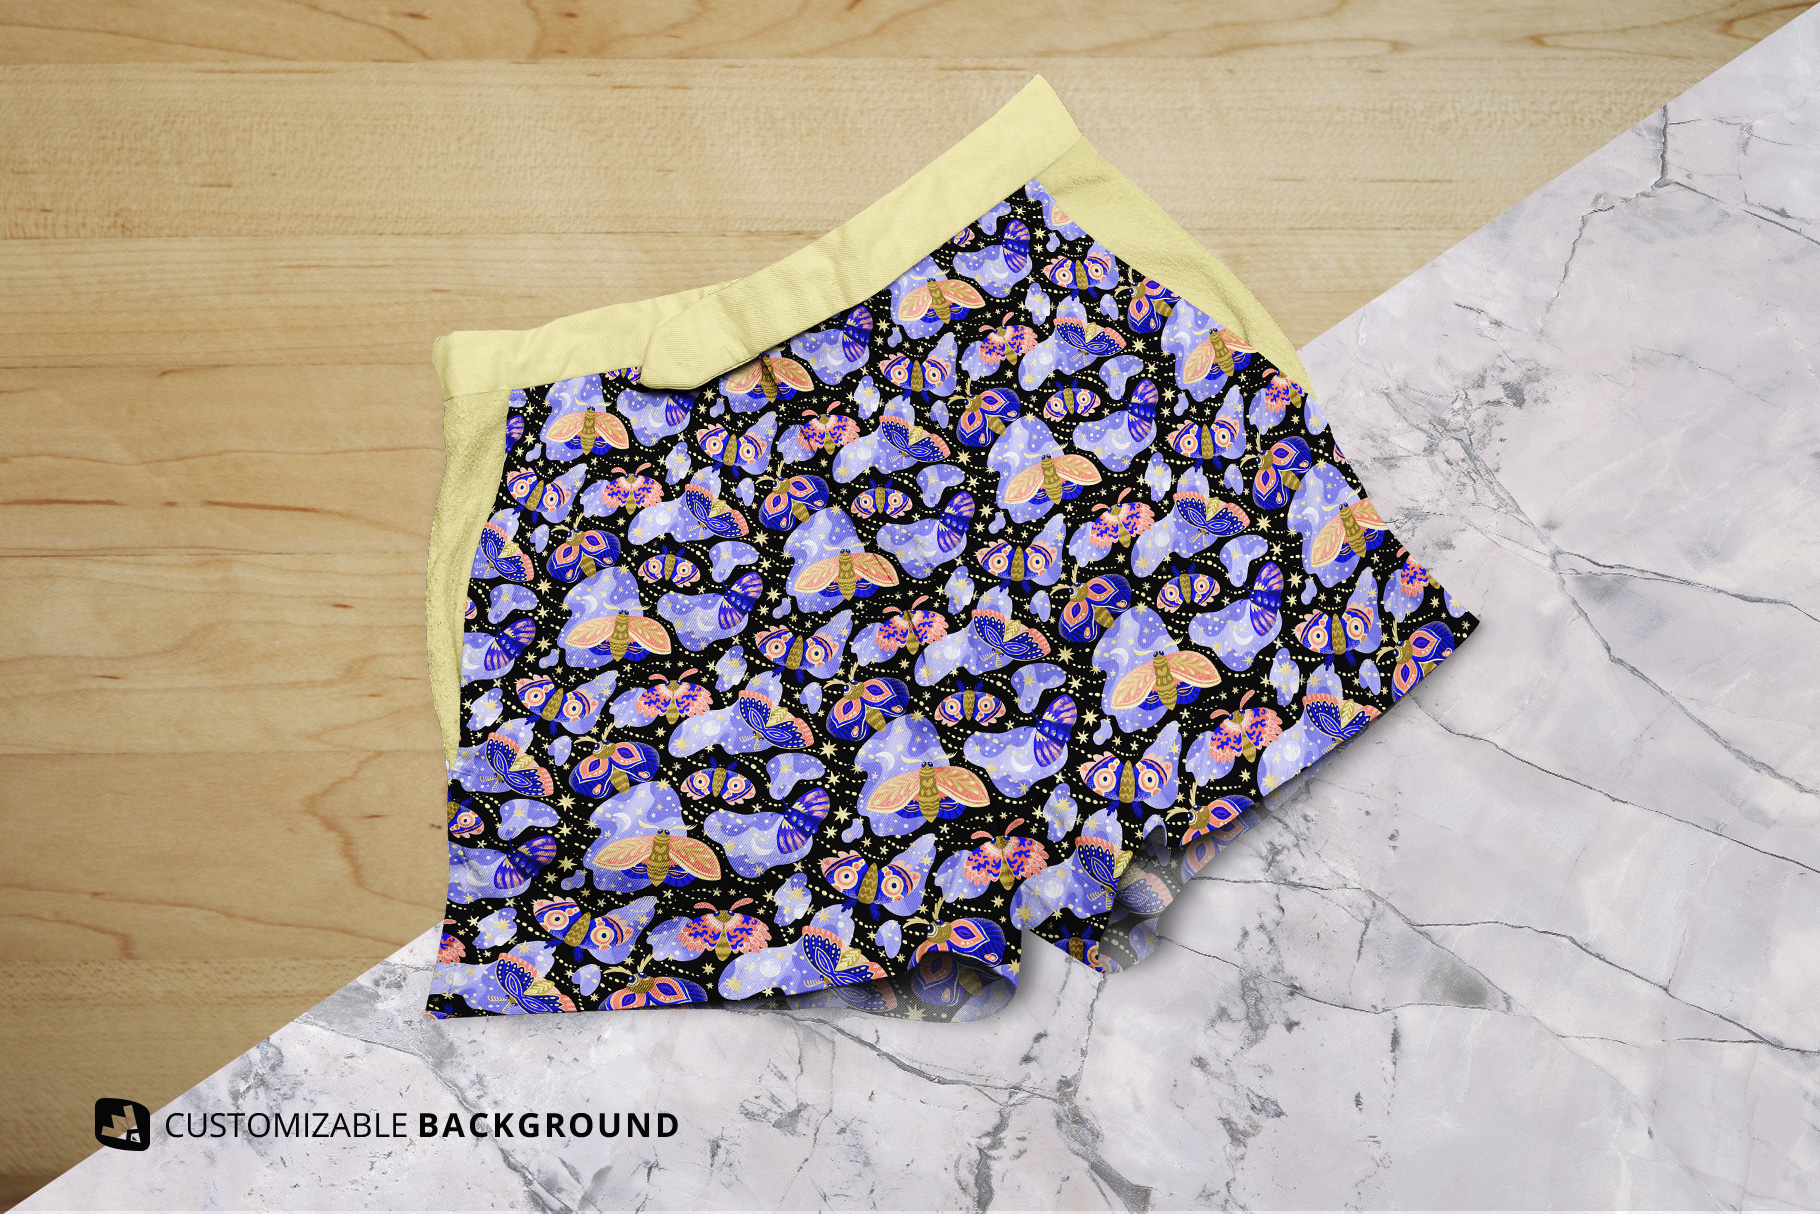 background options of the female cotton hot pants mockup